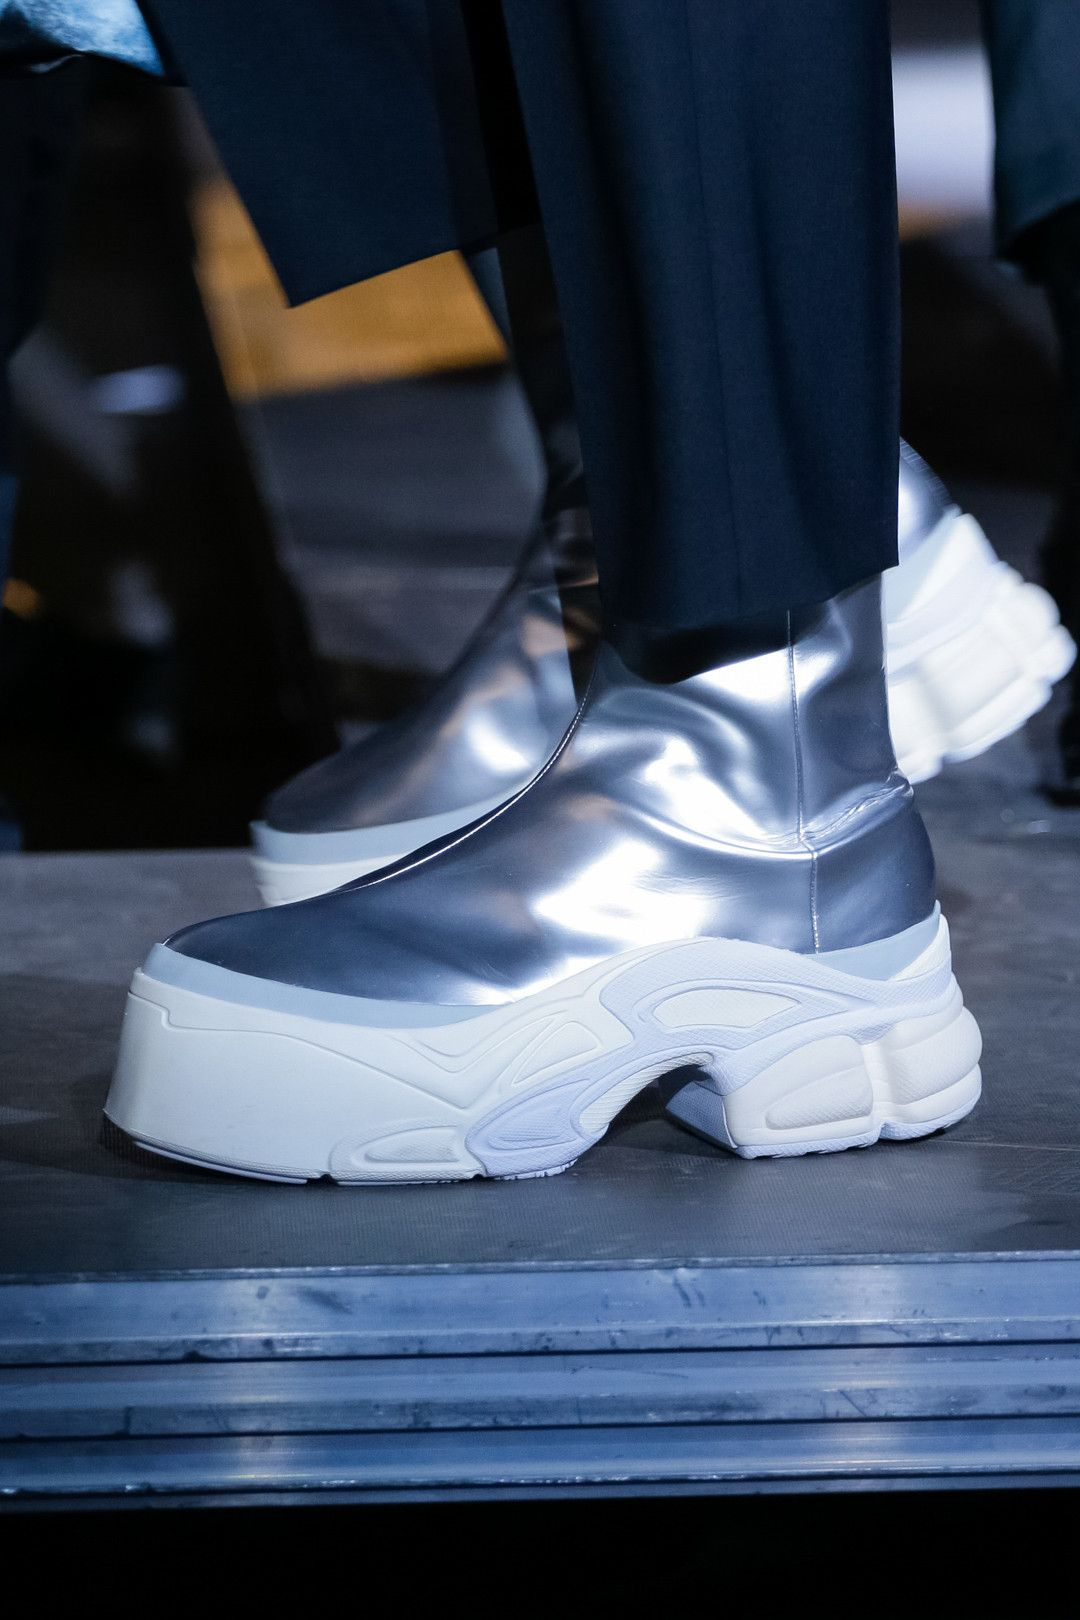 best sneakers 0c00d 10690 adidas by Raf Simons SpringSummer 2019 Footwear sneakers leather platform  boot Ozweego Detroit Runner paris fashion week runway